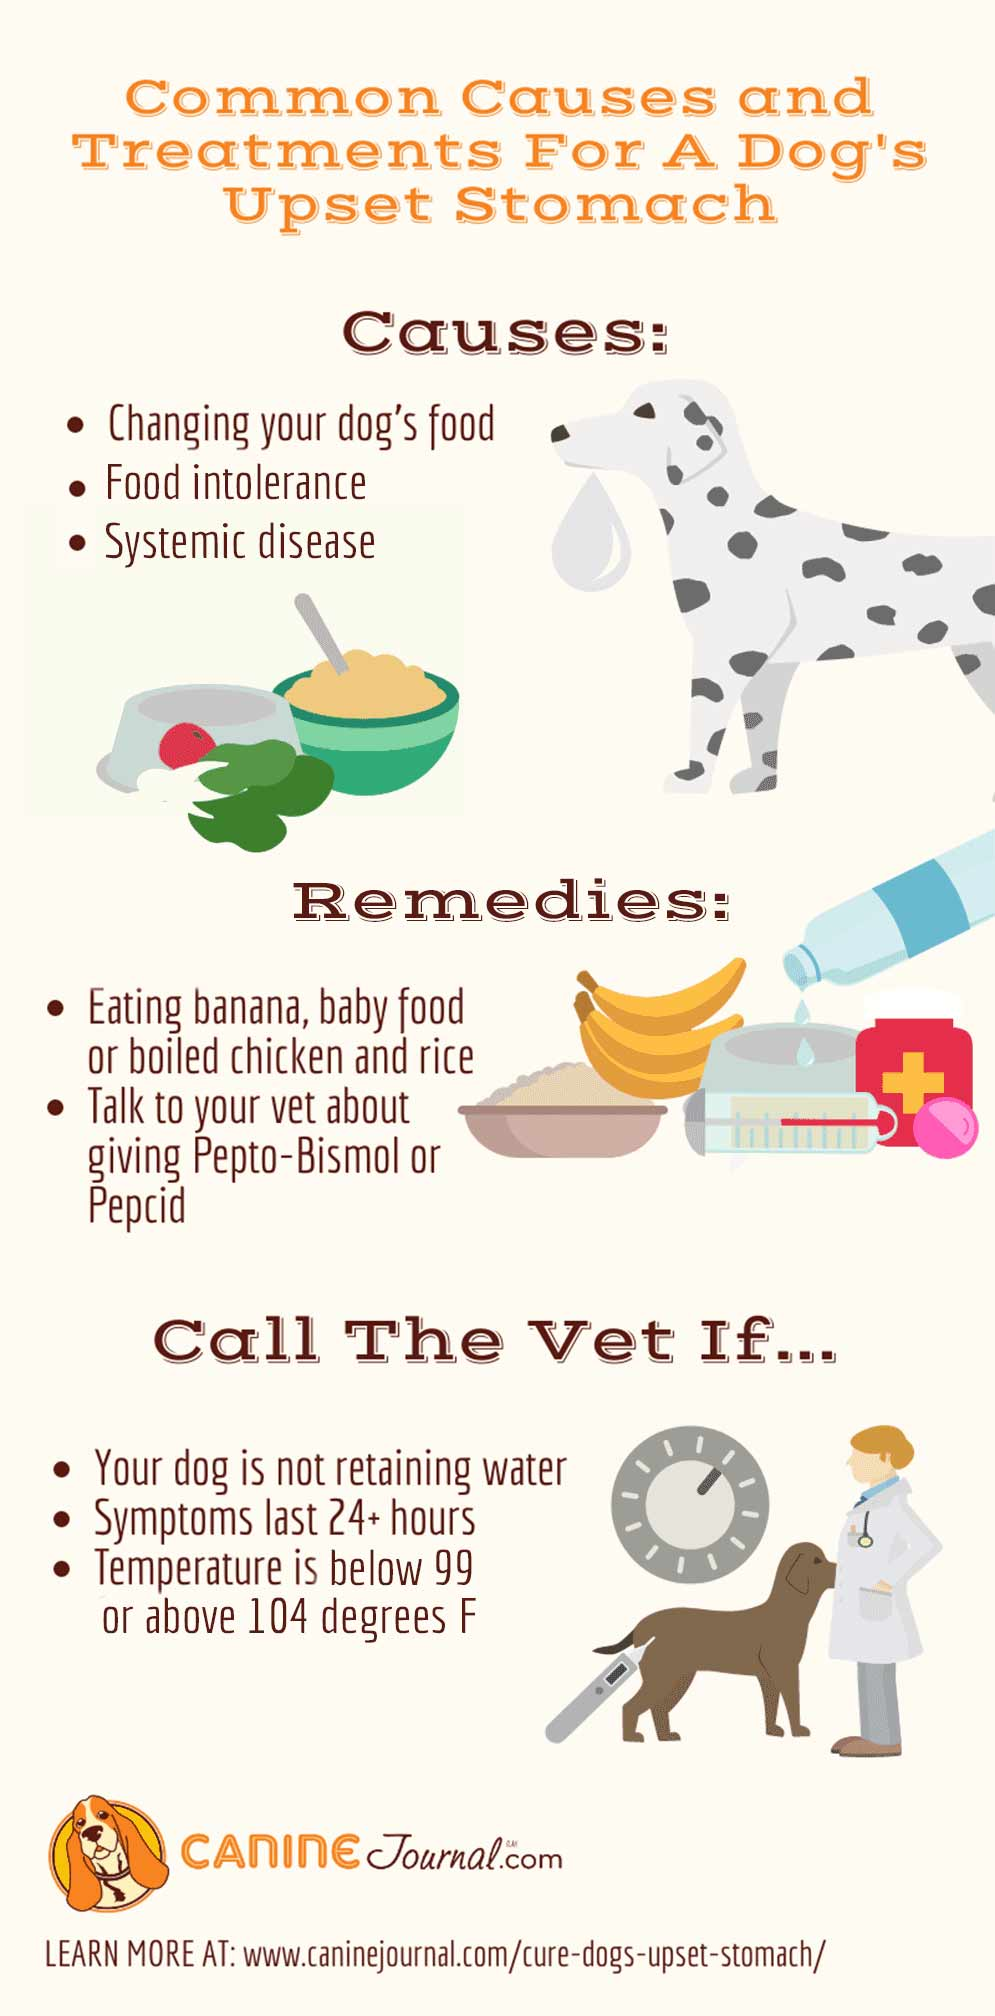 Common Causes and Treatments For A Dog's Upset Stomach Infographic